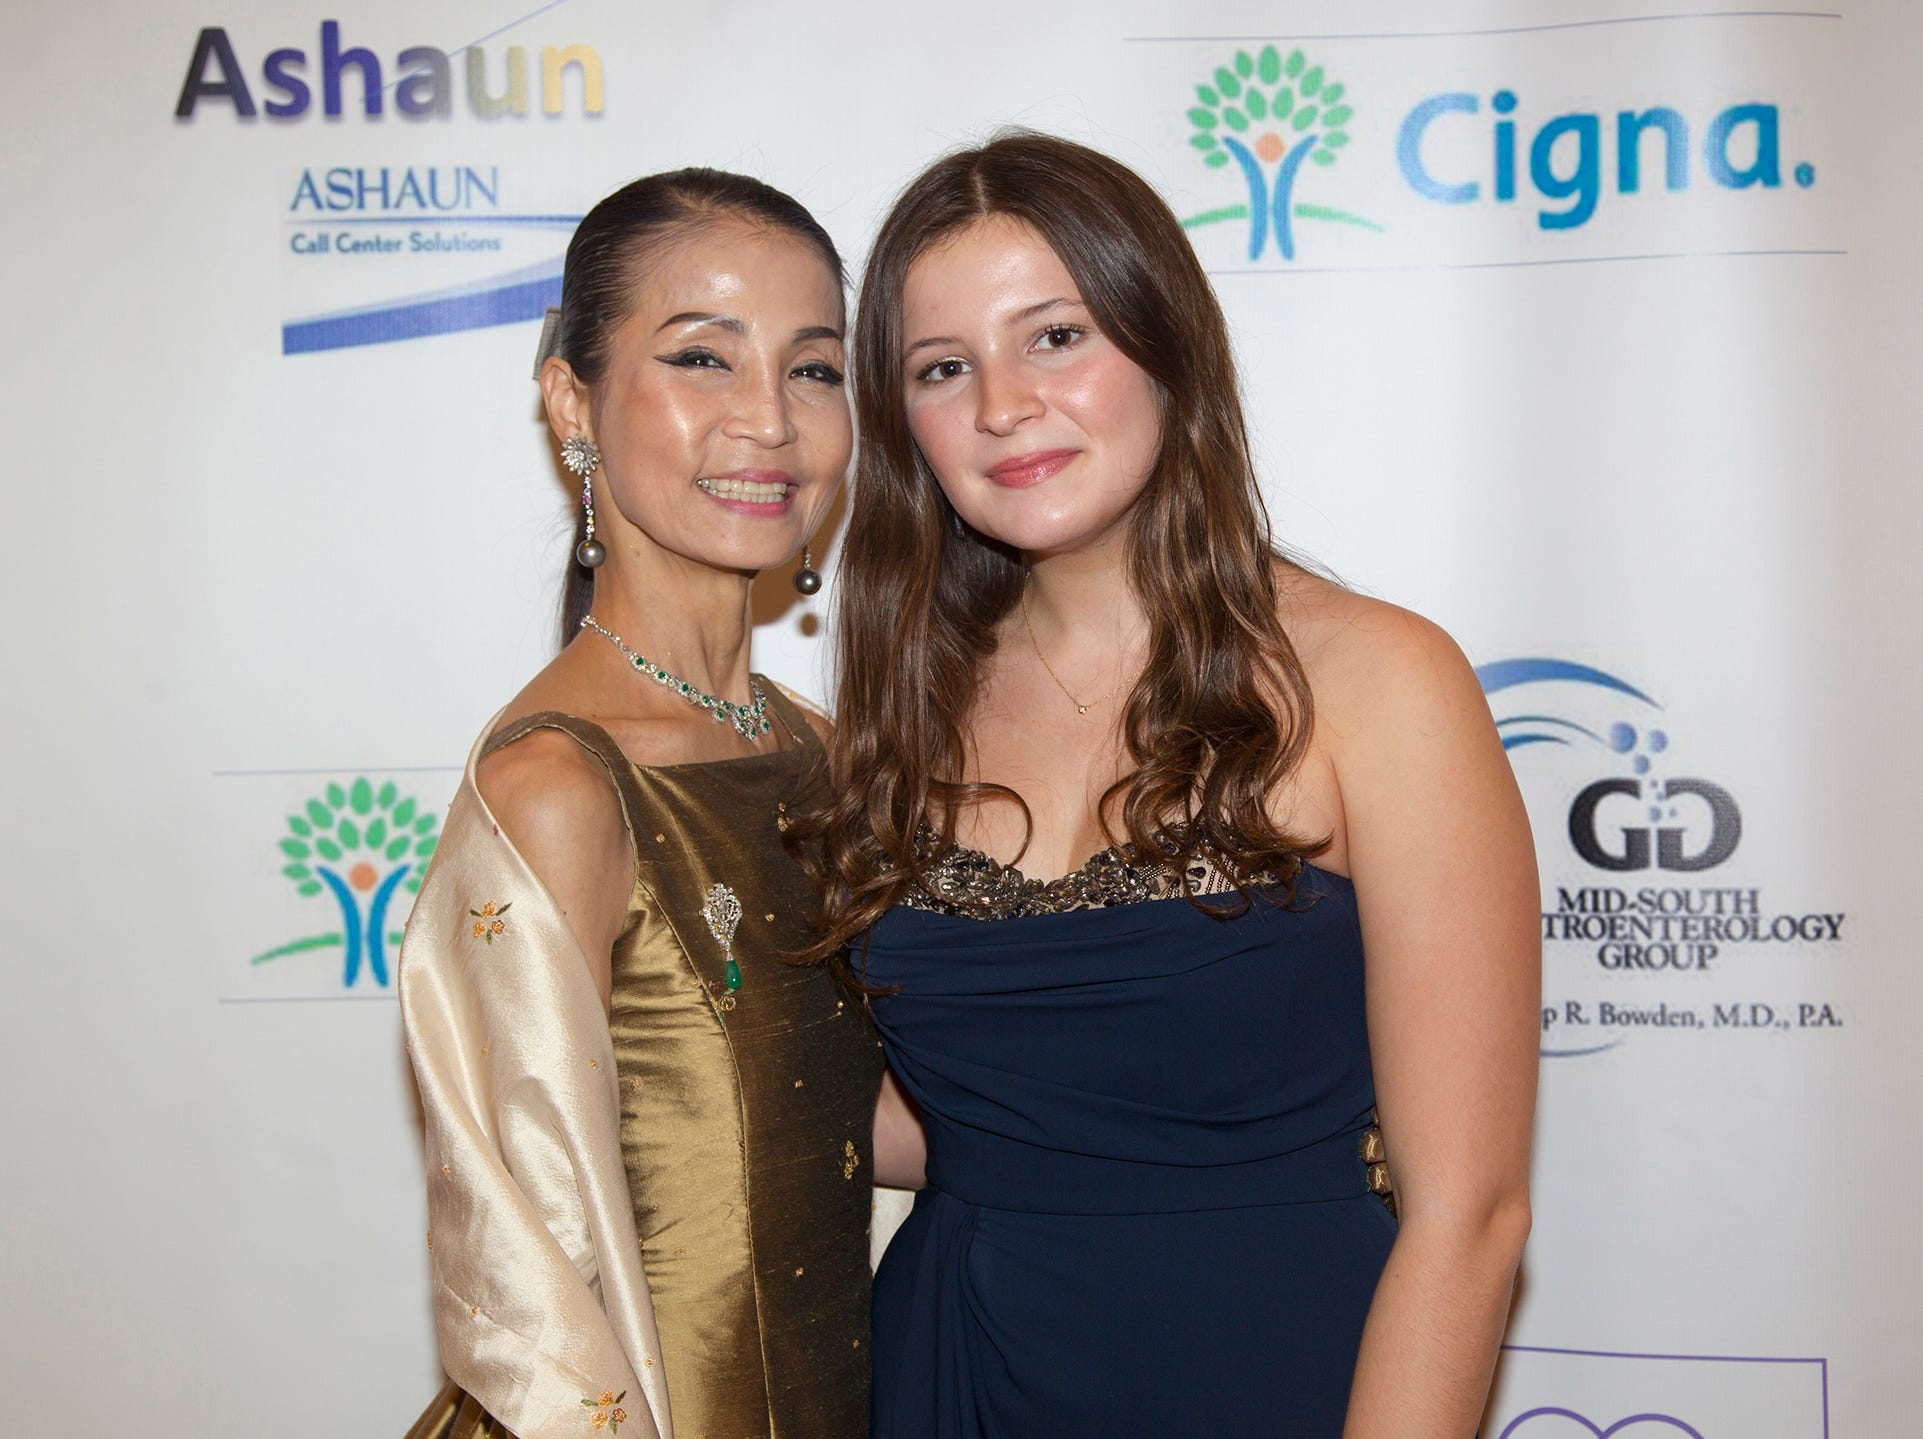 JBF Scholar Catherine Implicito and Heather Won Choi. Jessie Banks Foundation holds 16th annual Scholarship Awards Gala in Teaneck. 11/09/2018